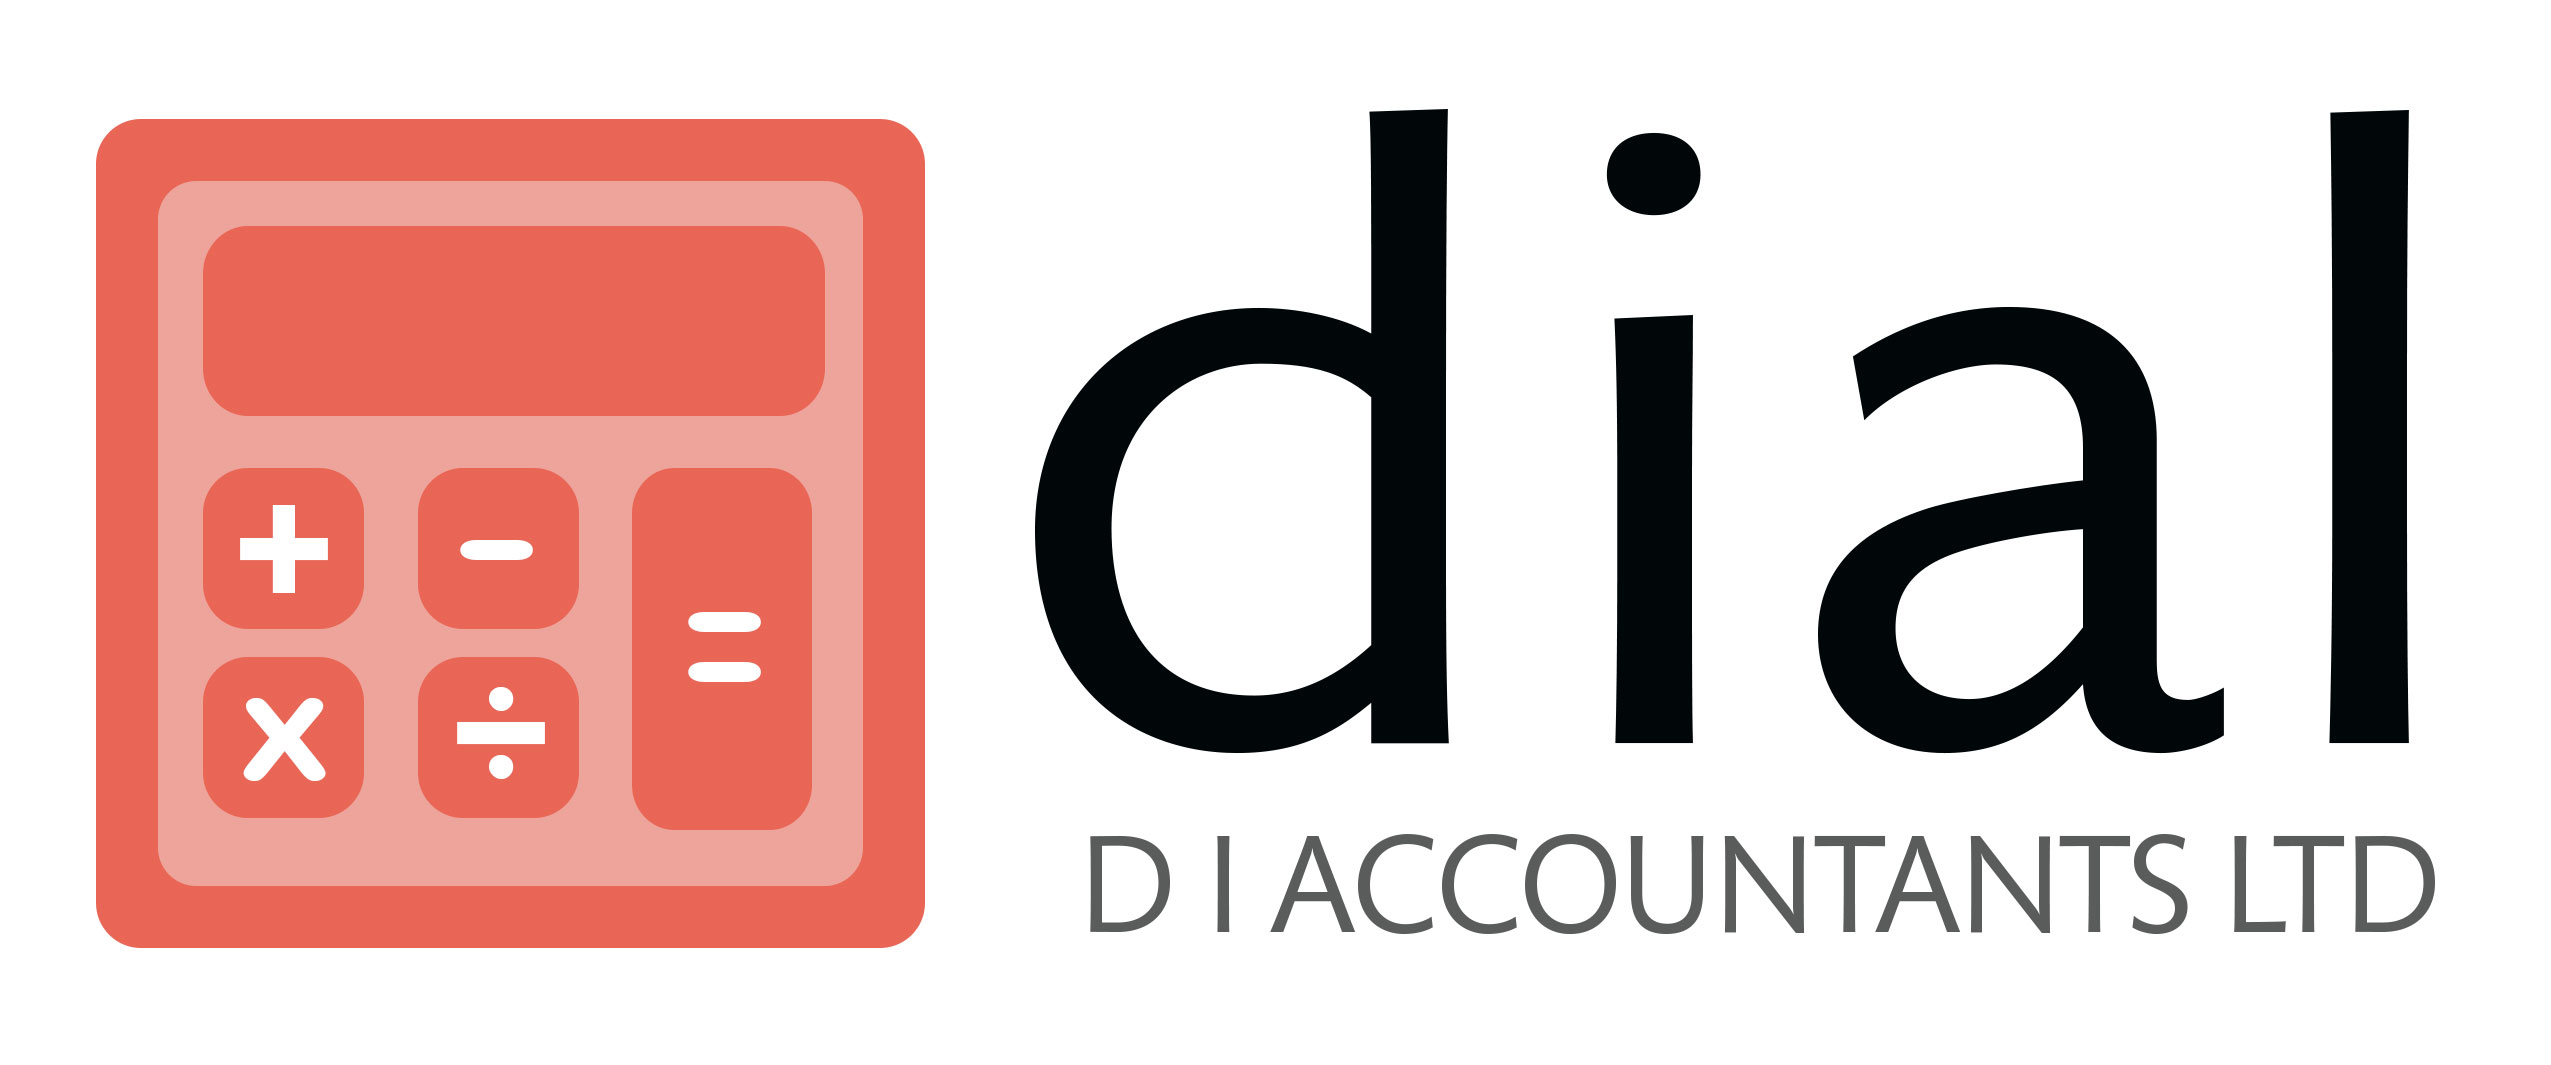 D I Accountants Ltd